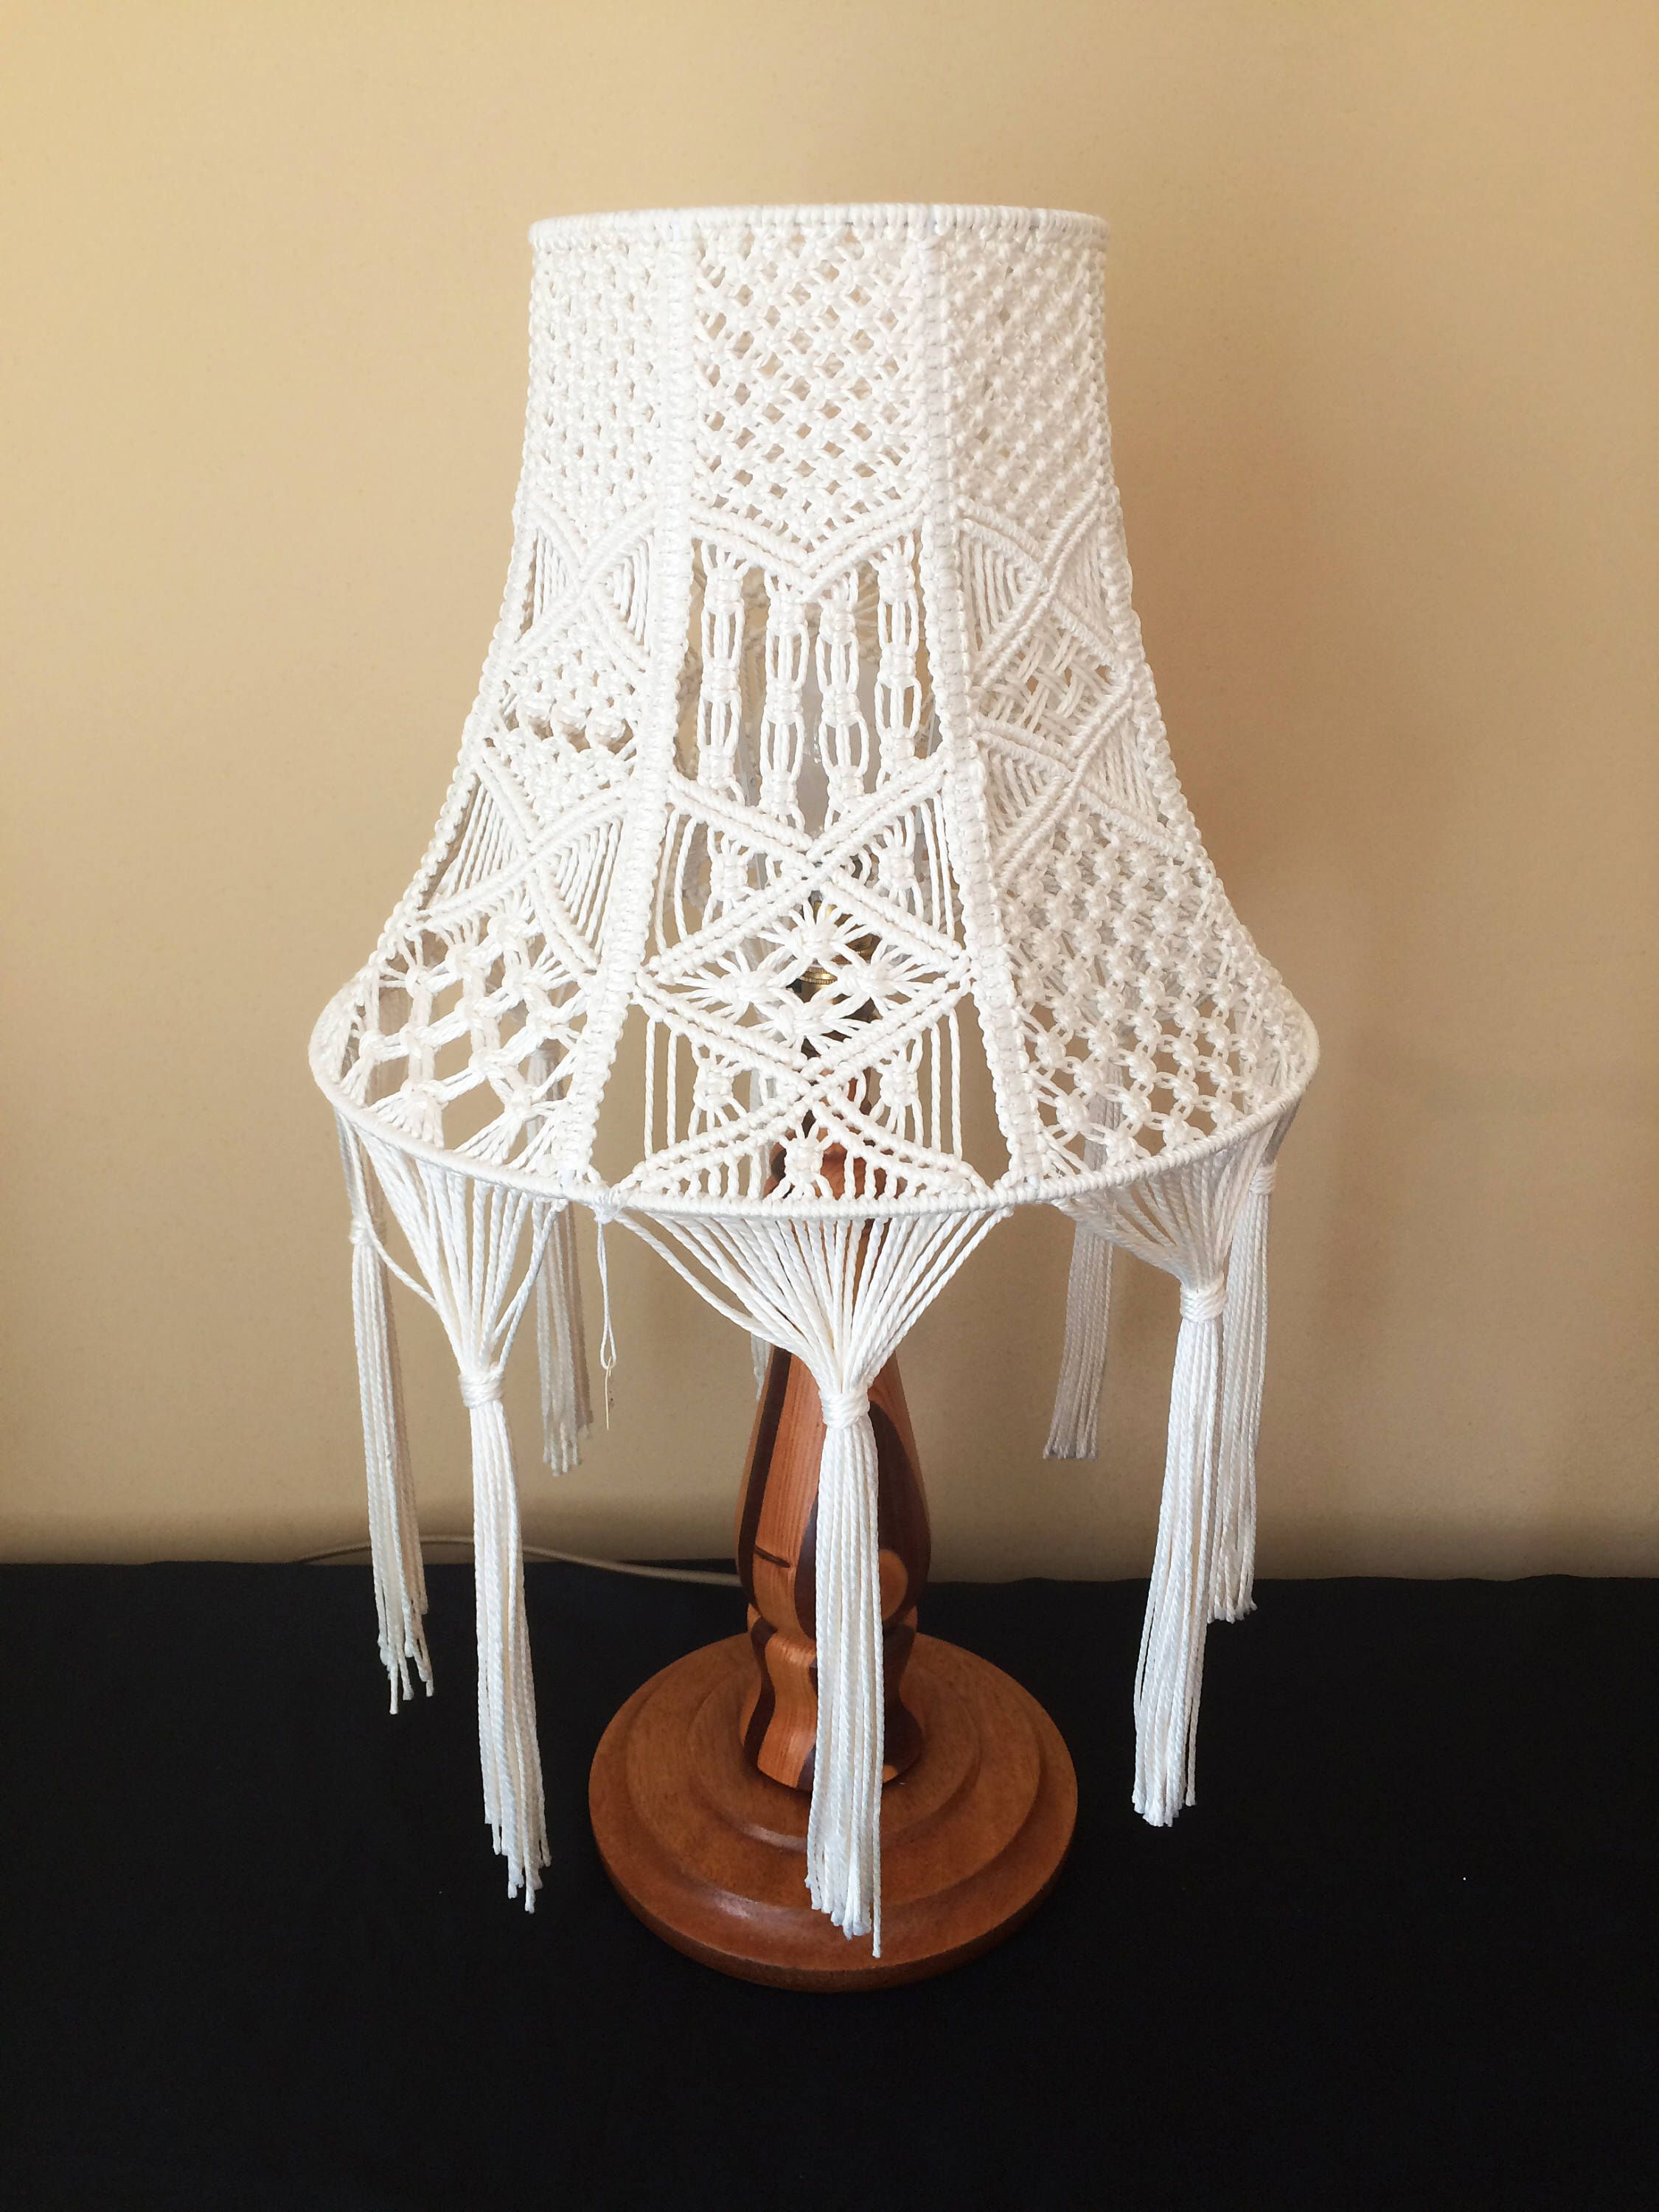 14 inch macrame lamp shade pinterest etsy patterns and craft 14 inch macrame lamp shade by creesloughmacrame on etsy httpsetsy listing52164647414 inch macrame lamp shade aloadofball Images